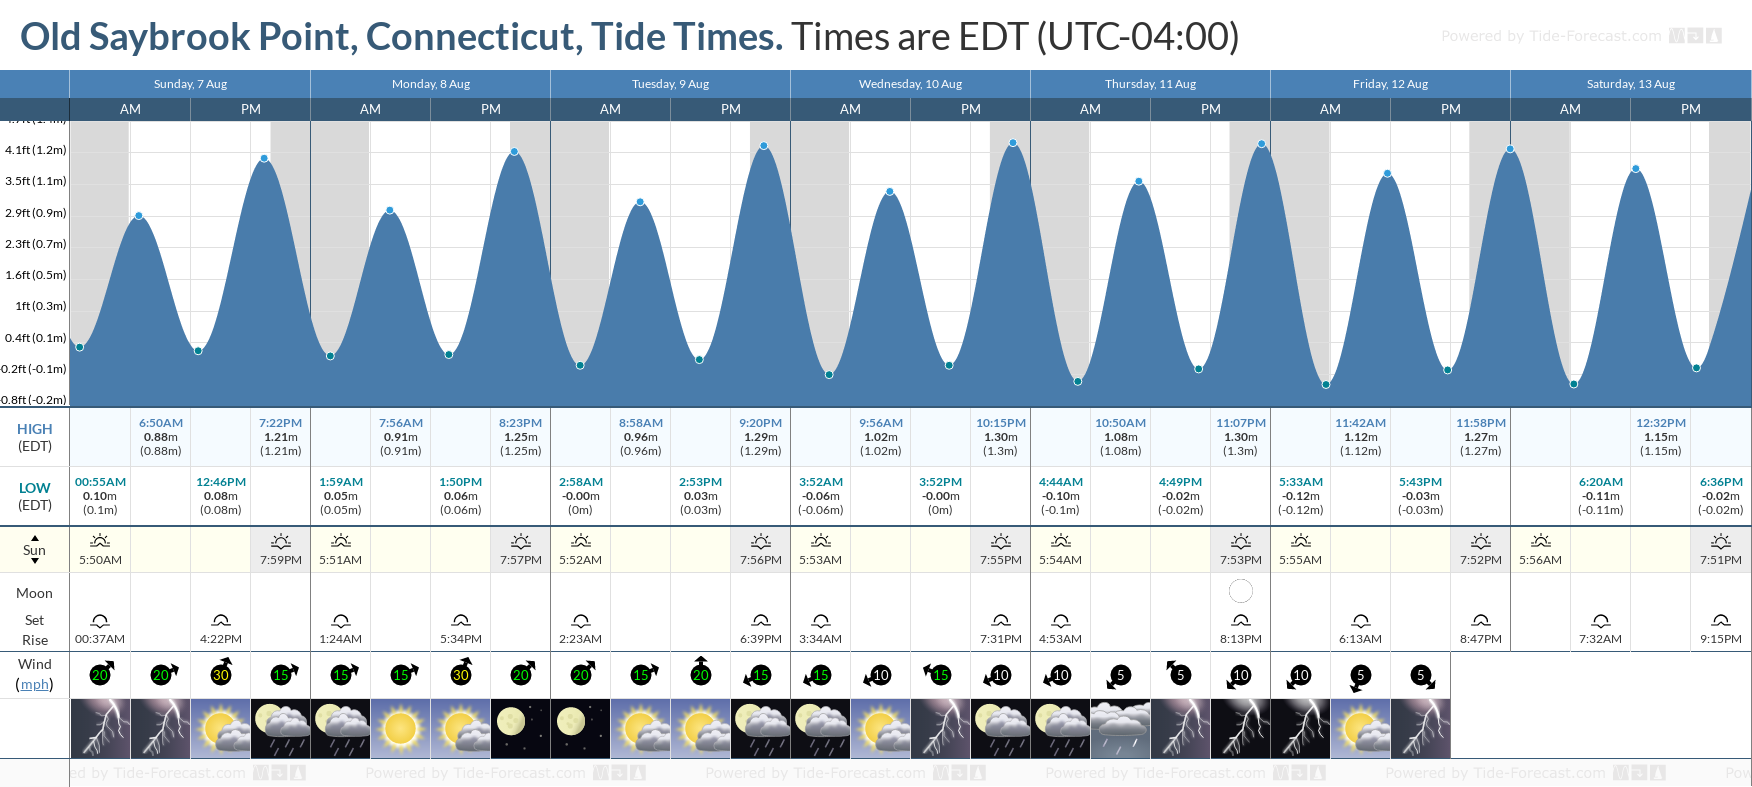 Old Saybrook Point, Connecticut Tide Chart including high and low tide tide times for the next 7 days